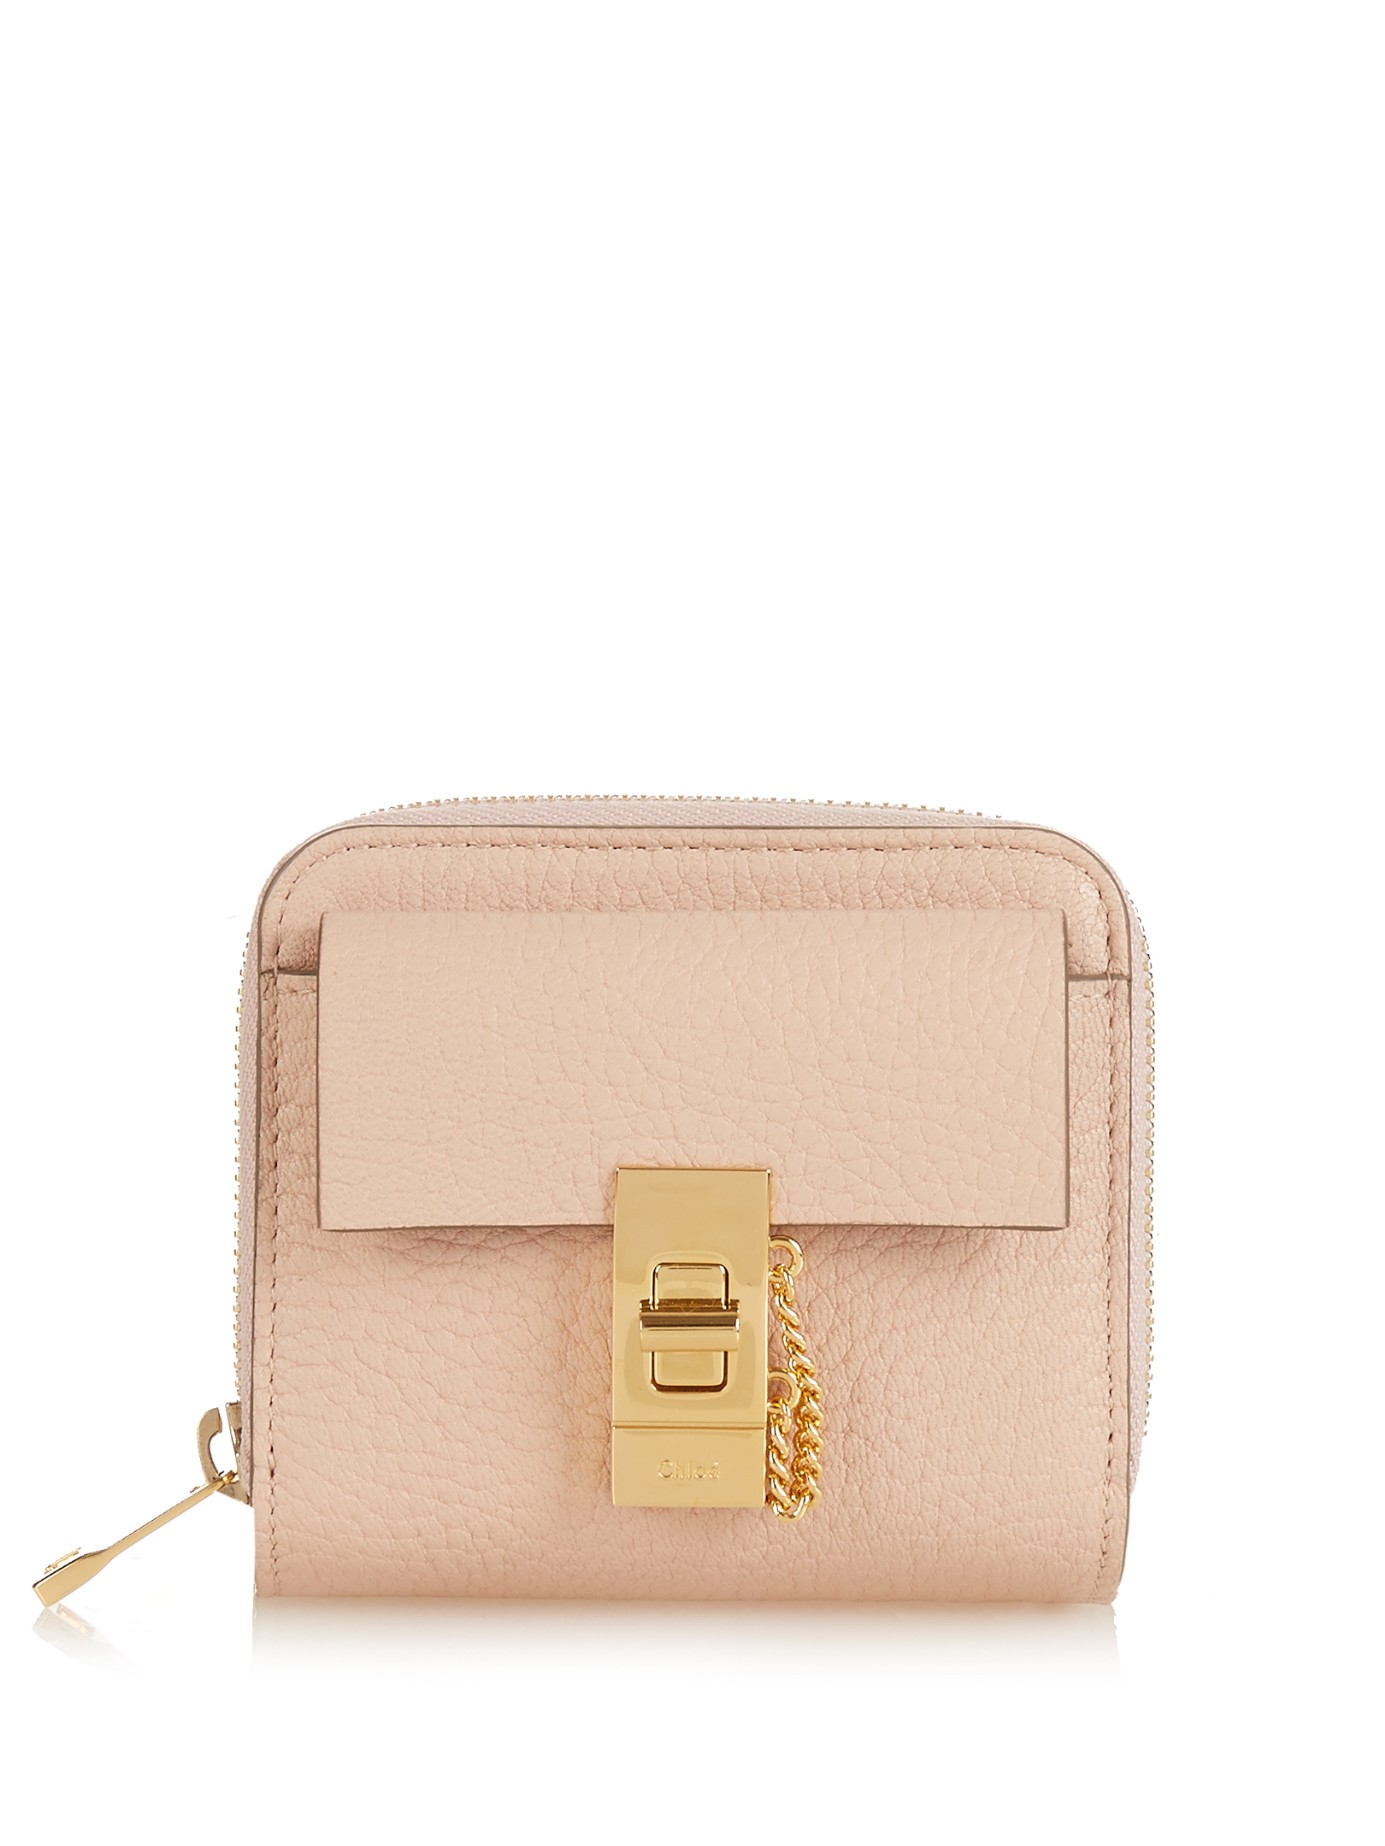 replica bags chloe - Chlo�� Drew Grained-Leather Wallet in Pink (LIGHT PINK) | Lyst